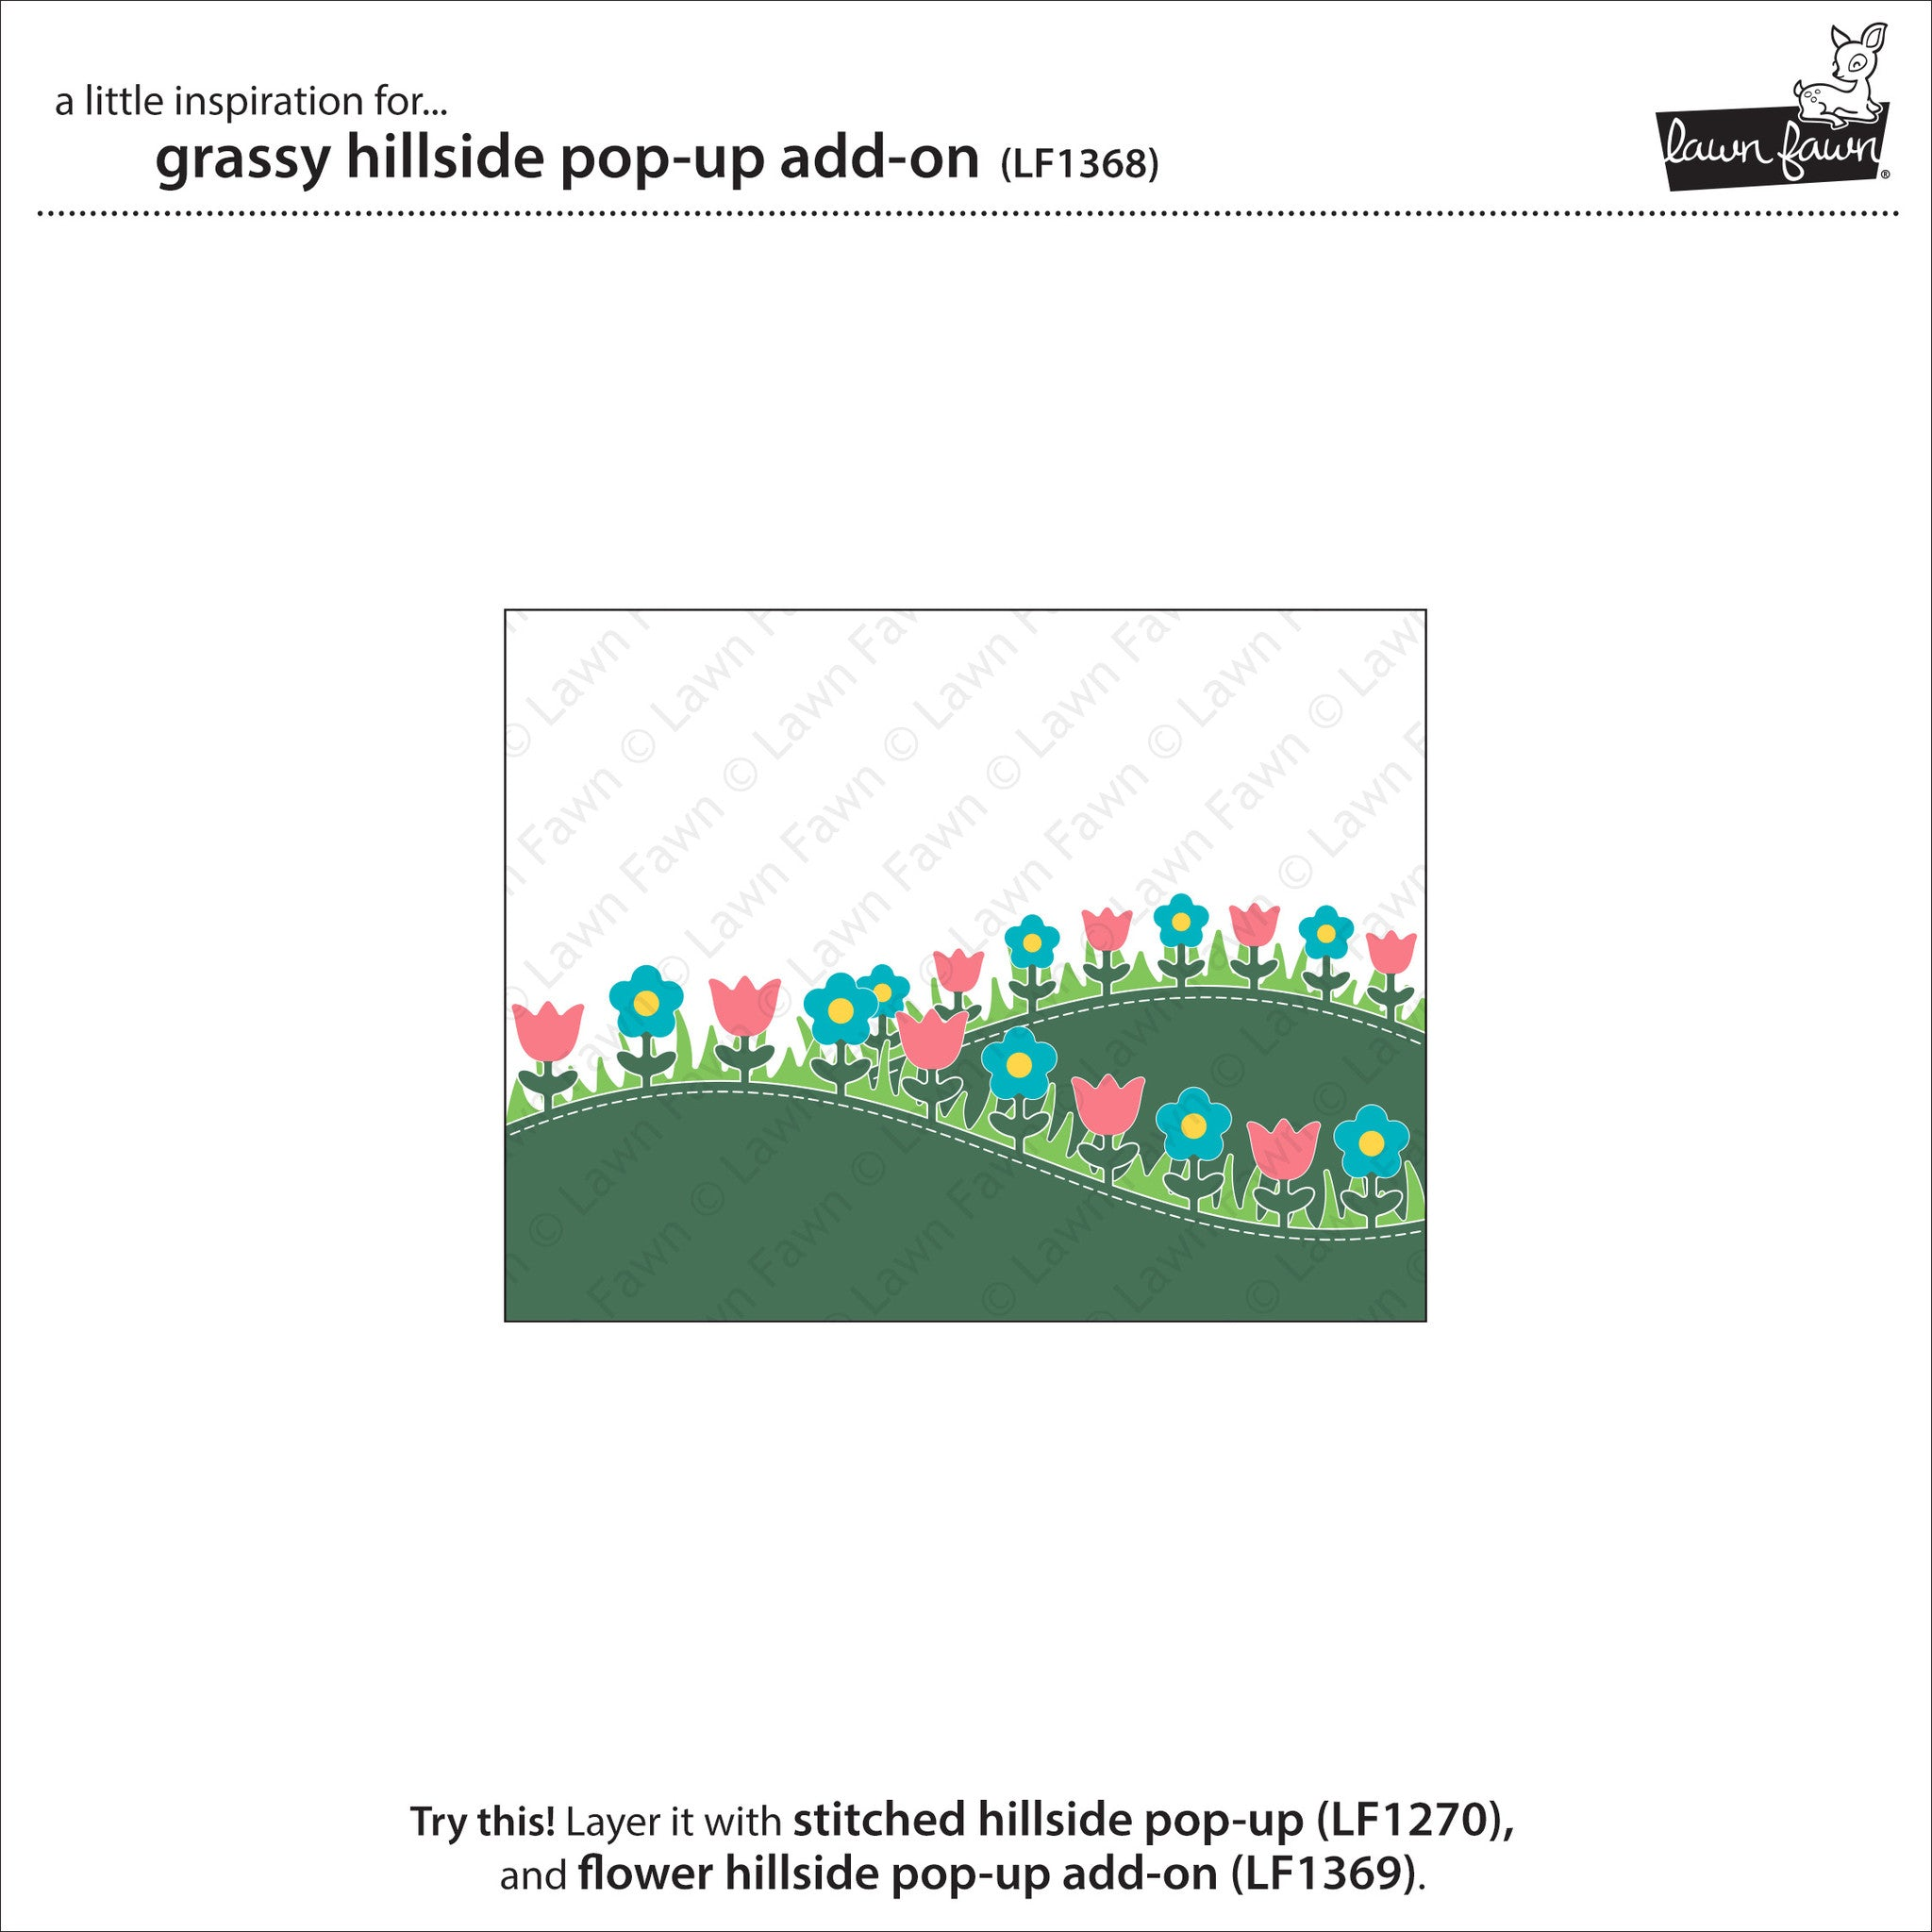 grassy hillside pop-up add-on